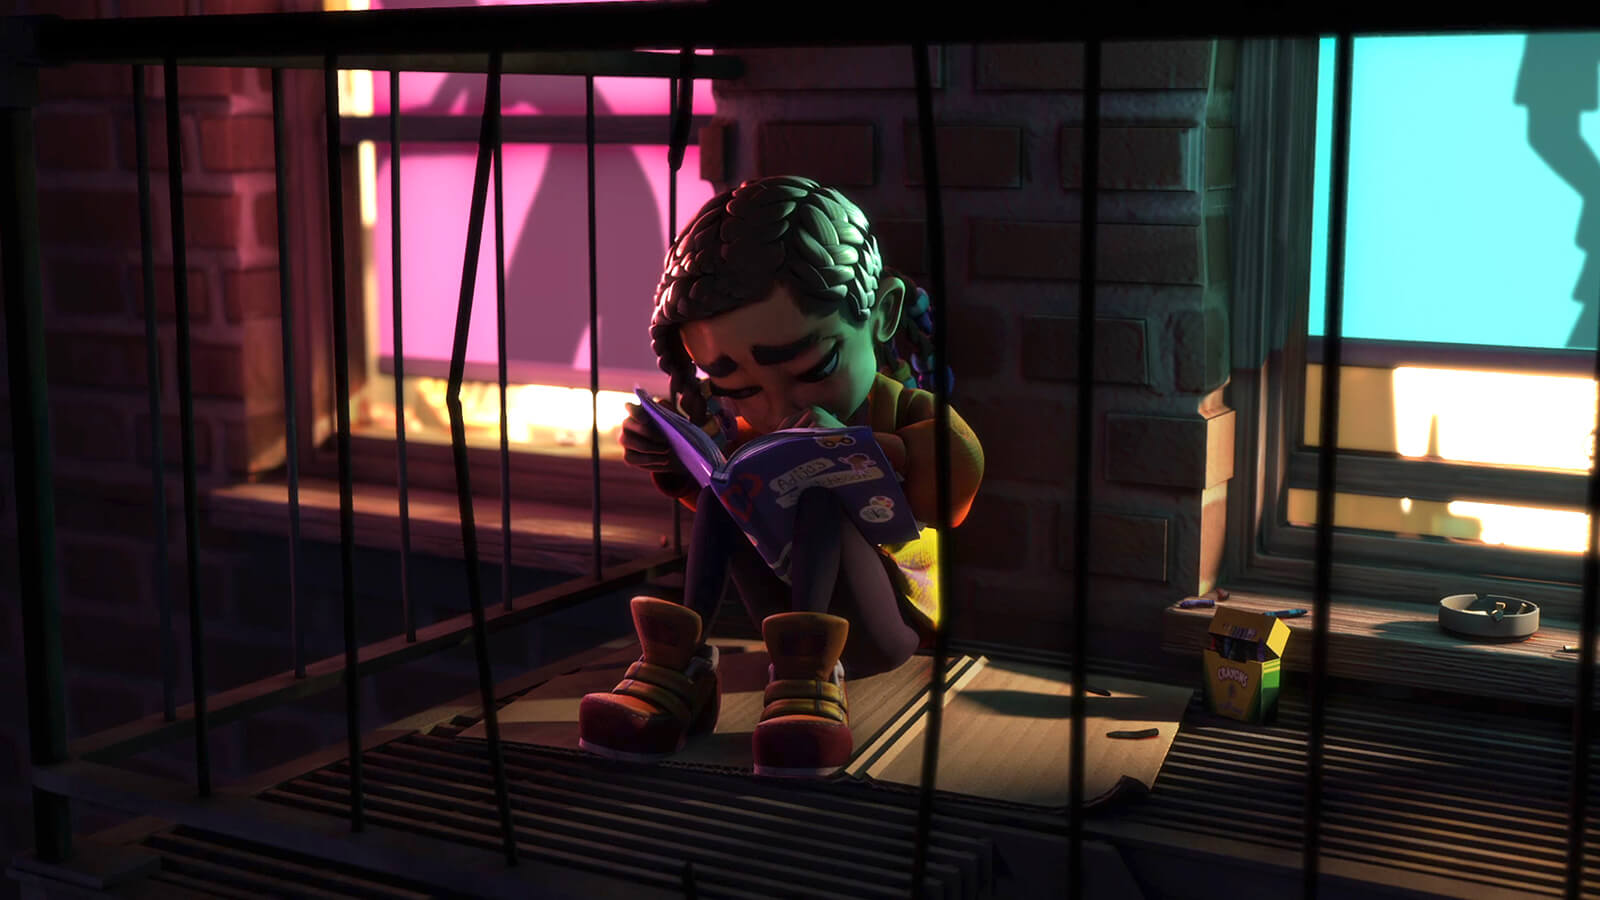 Closeup of a young girl sadly sitting on a fire escape, coloring in a book, and lit from the apartment behind her